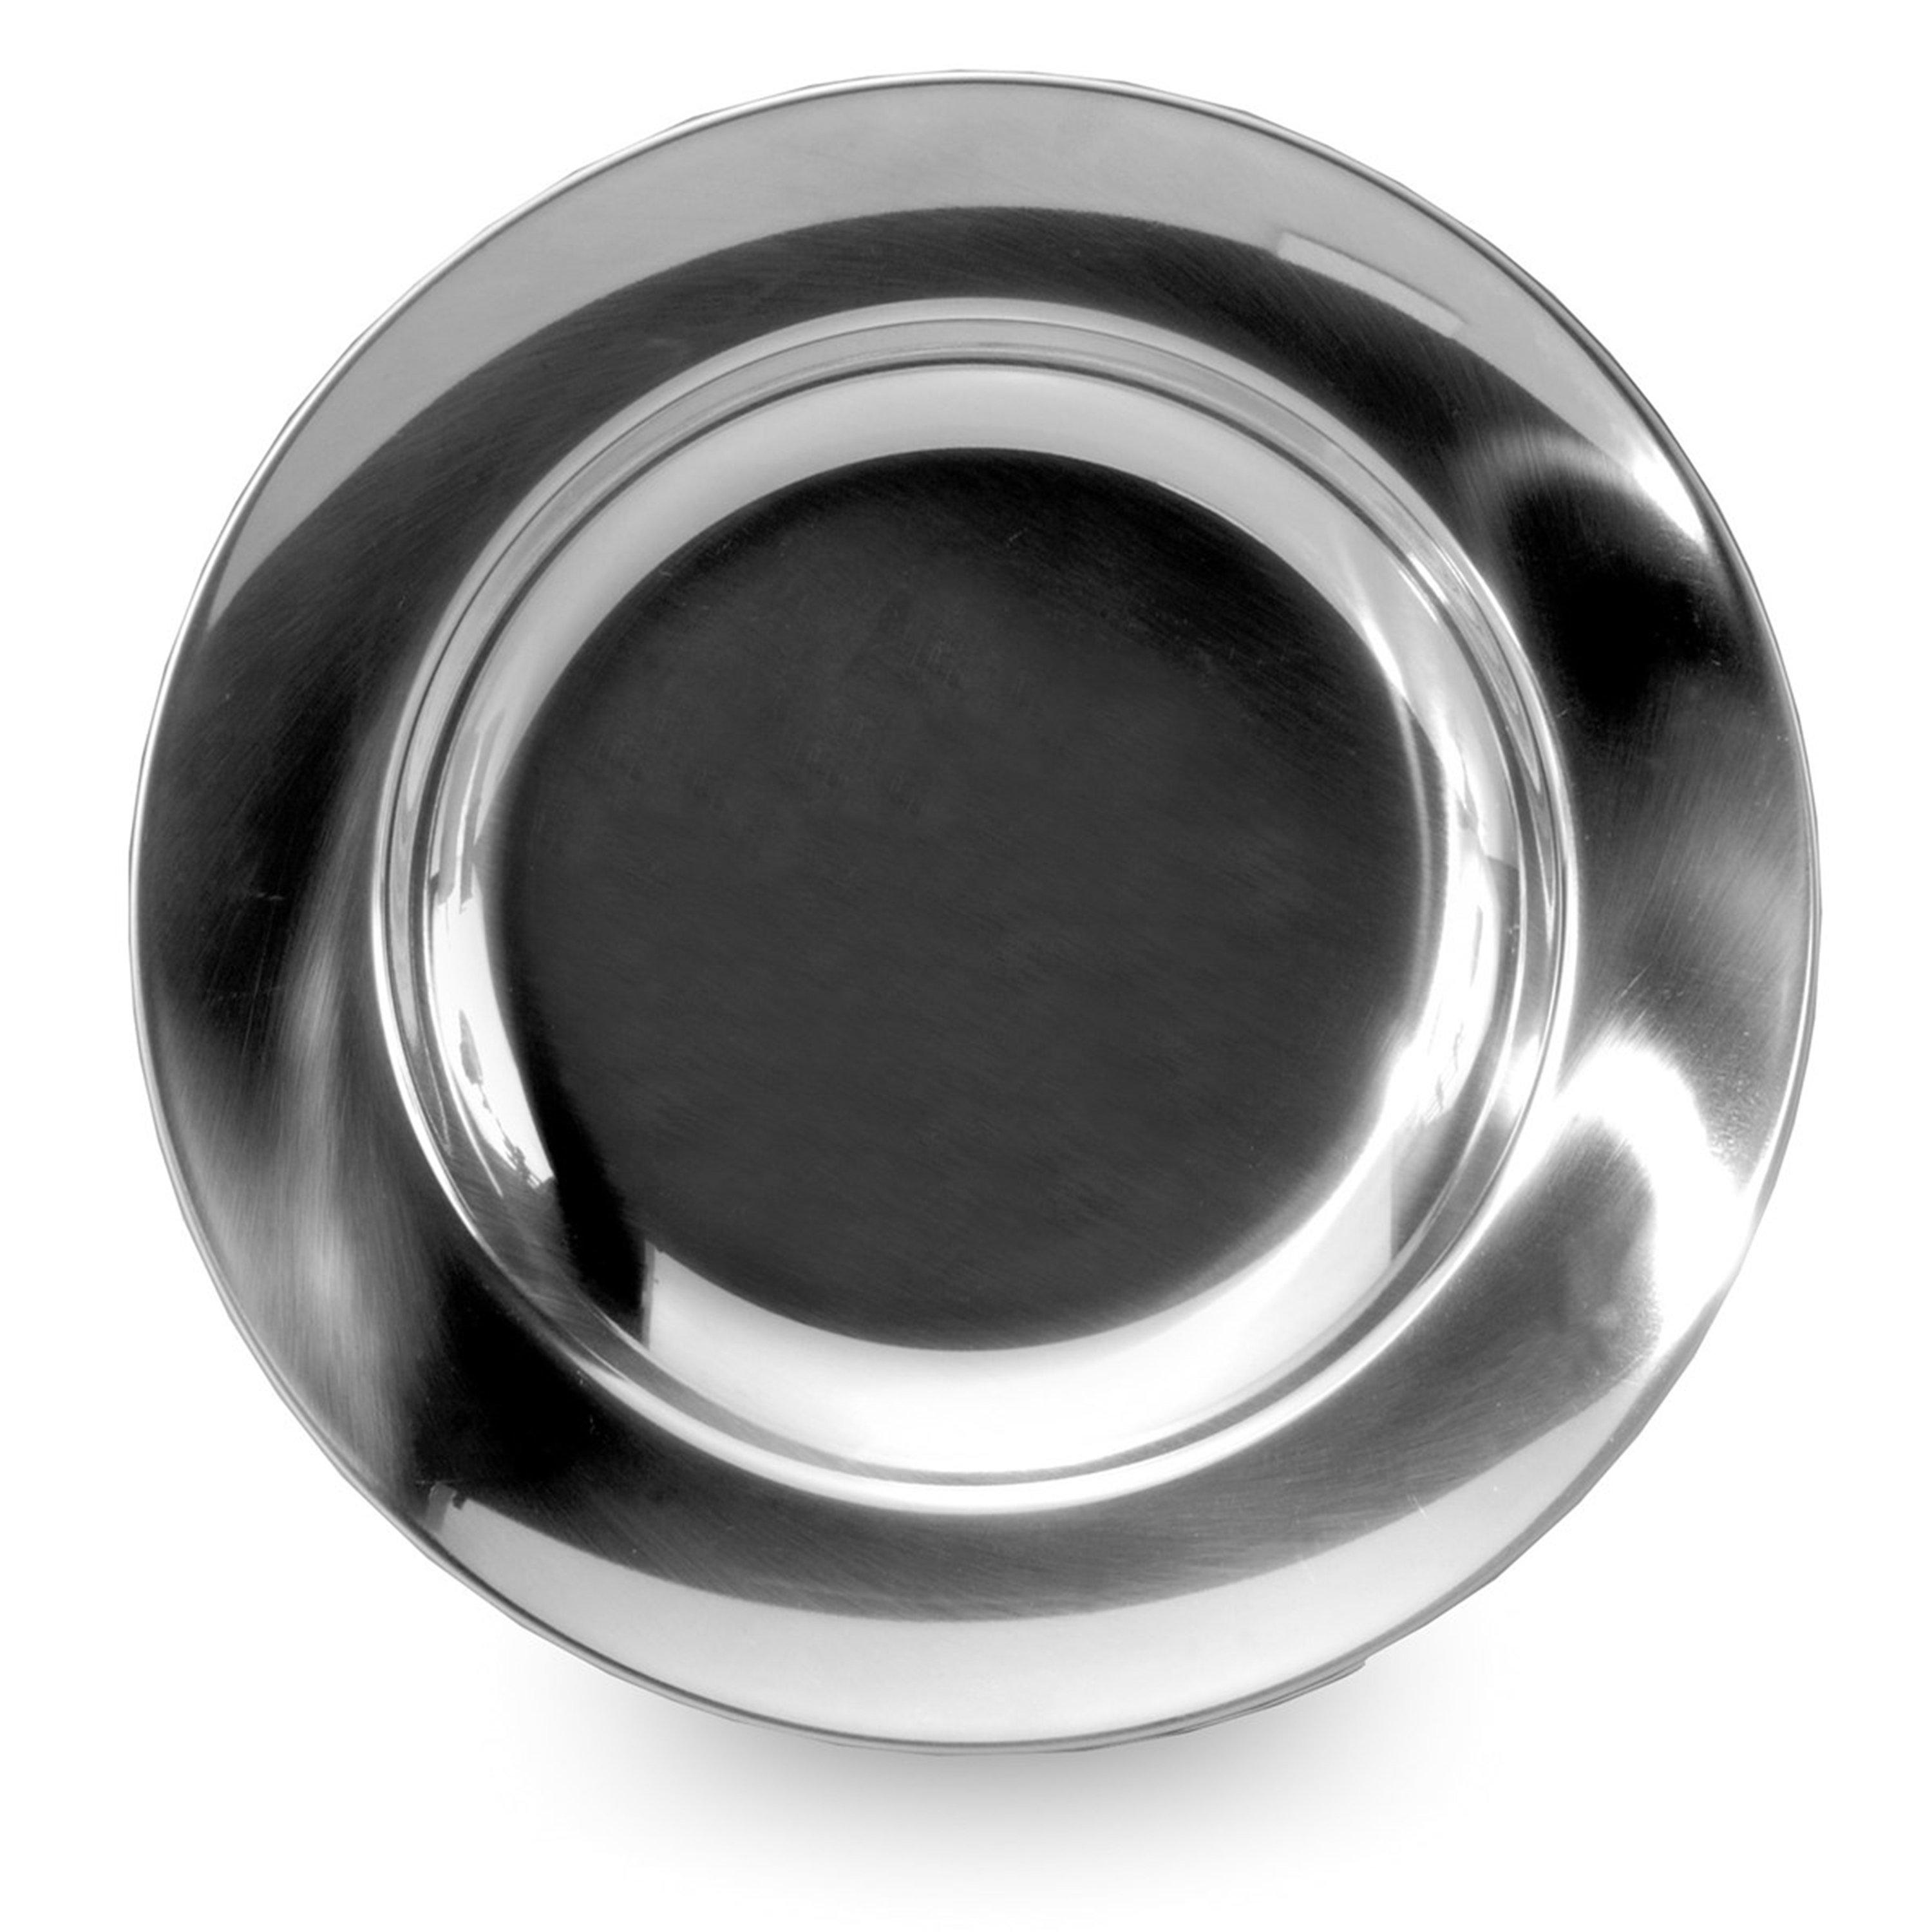 Lifeventure Stainless Steel Plate - Silver/asso  Silver/asso